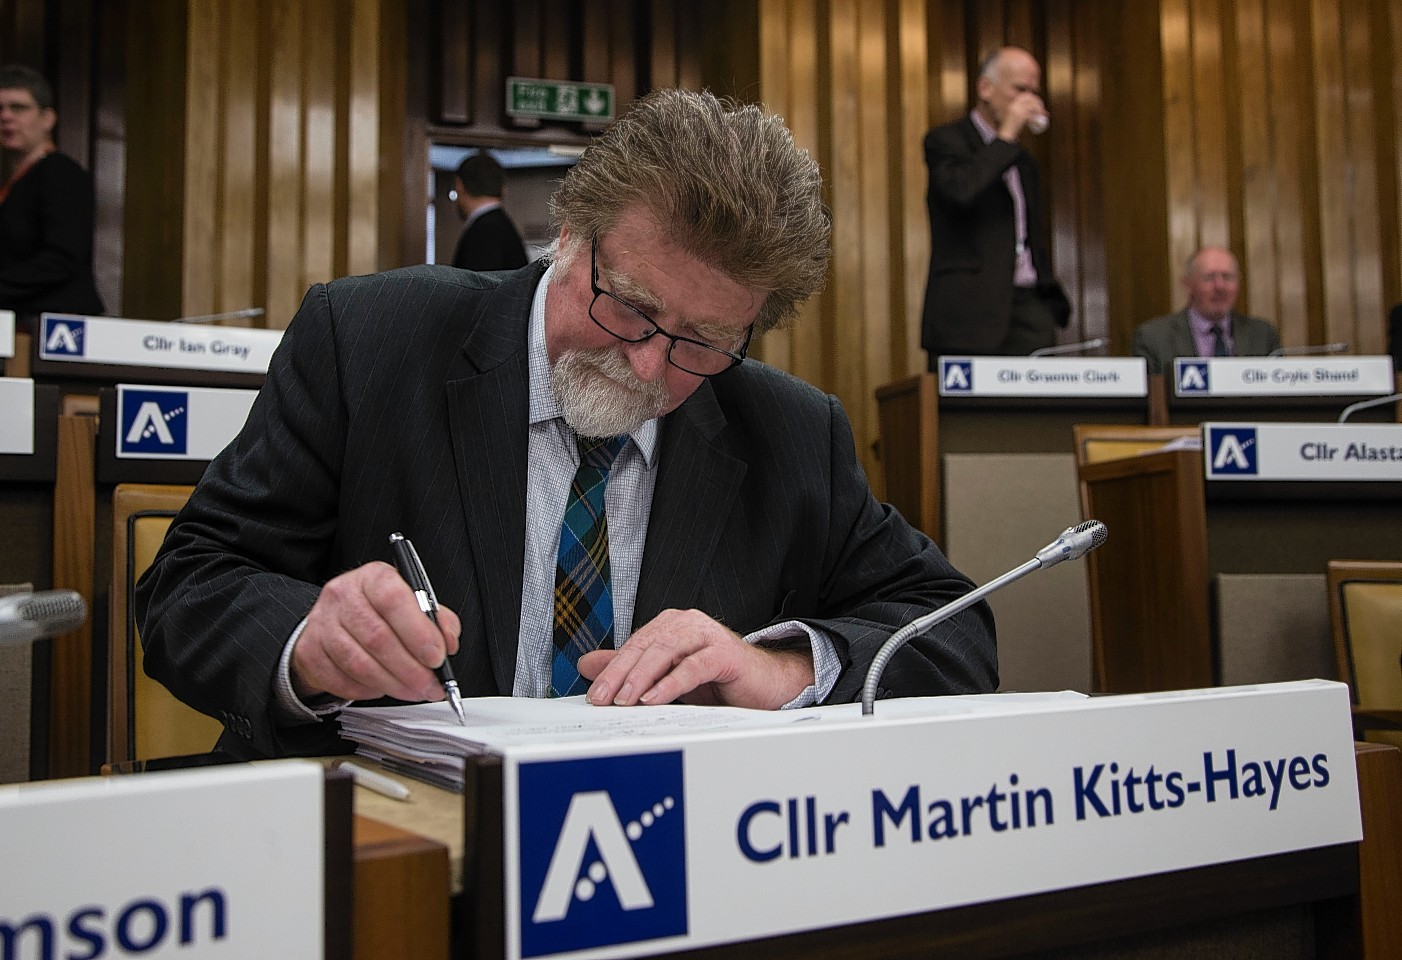 Former council co-leader Martin Kitts-Hayes